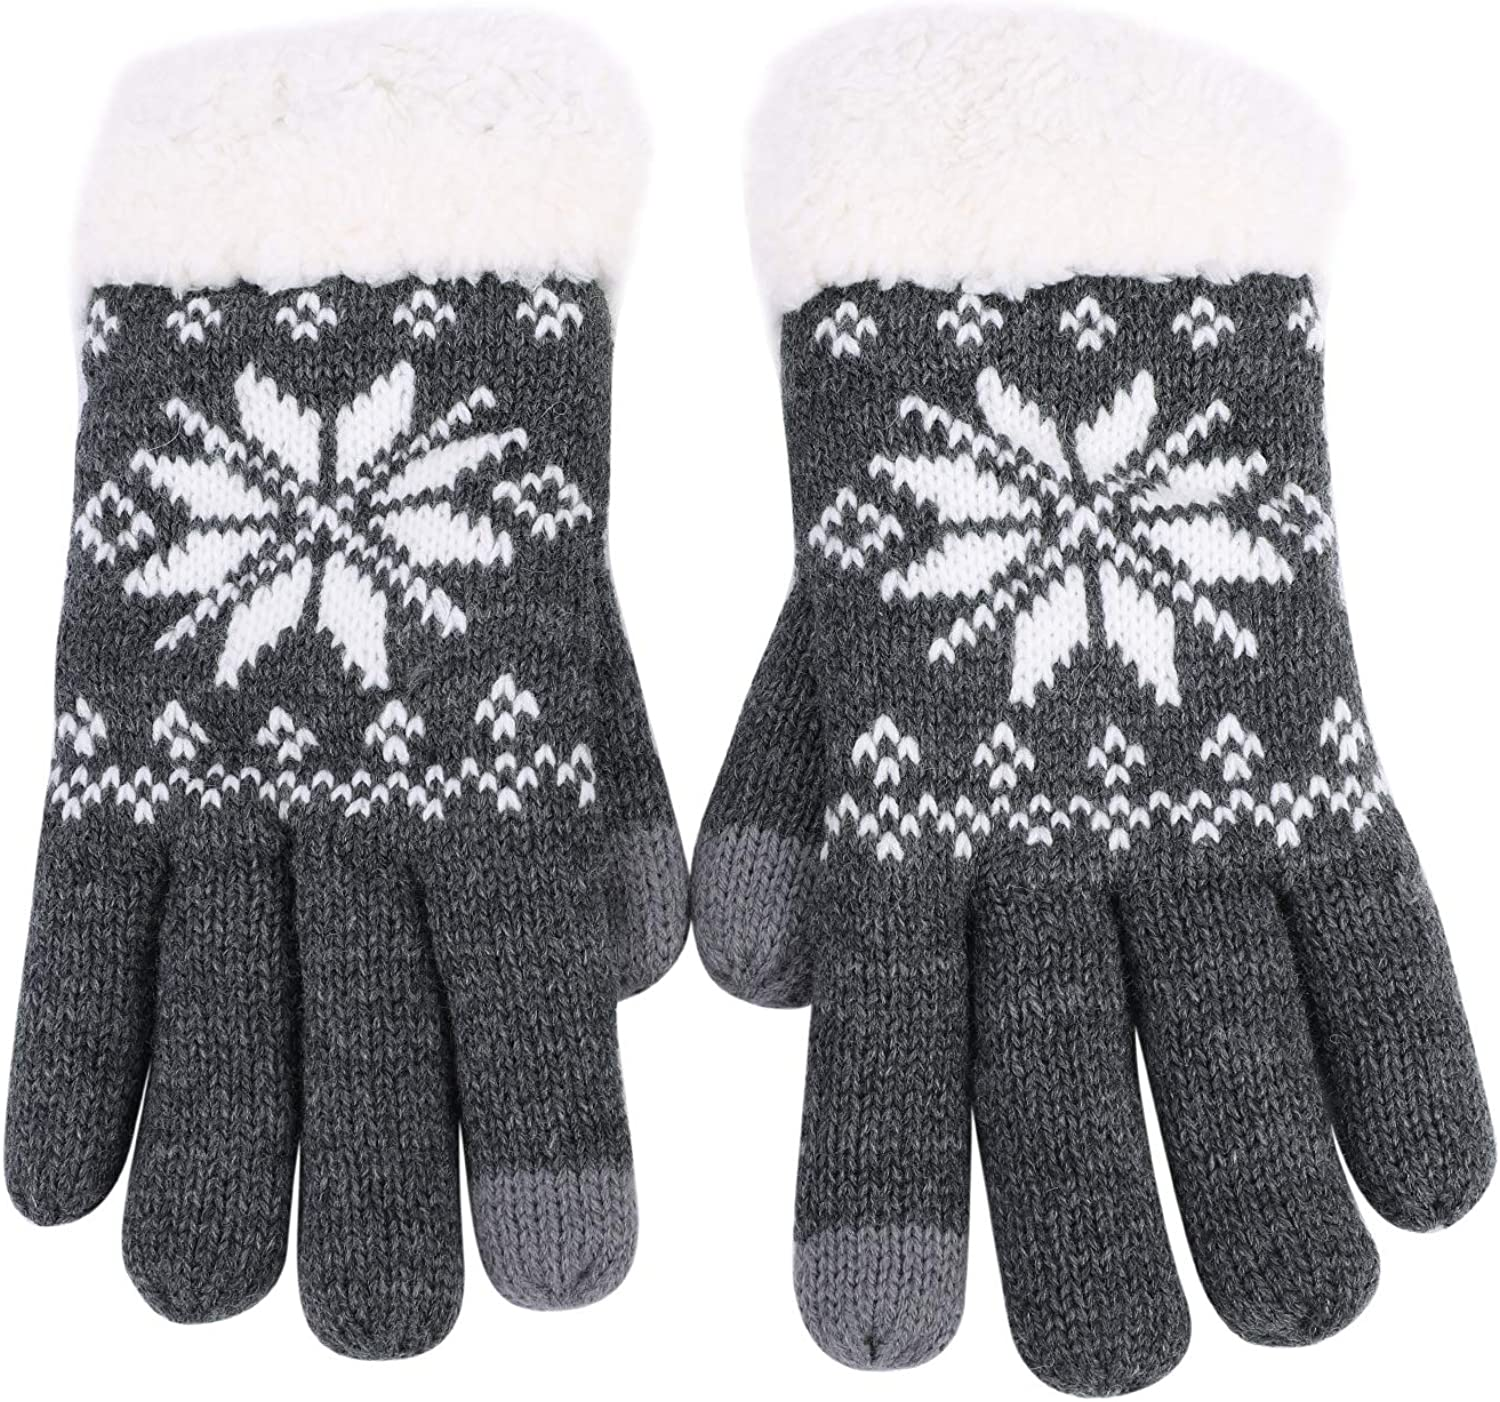 Knitted Warm Touchscreen Gloves Winter Lined Driving Cold Texting Outdoor Mitten